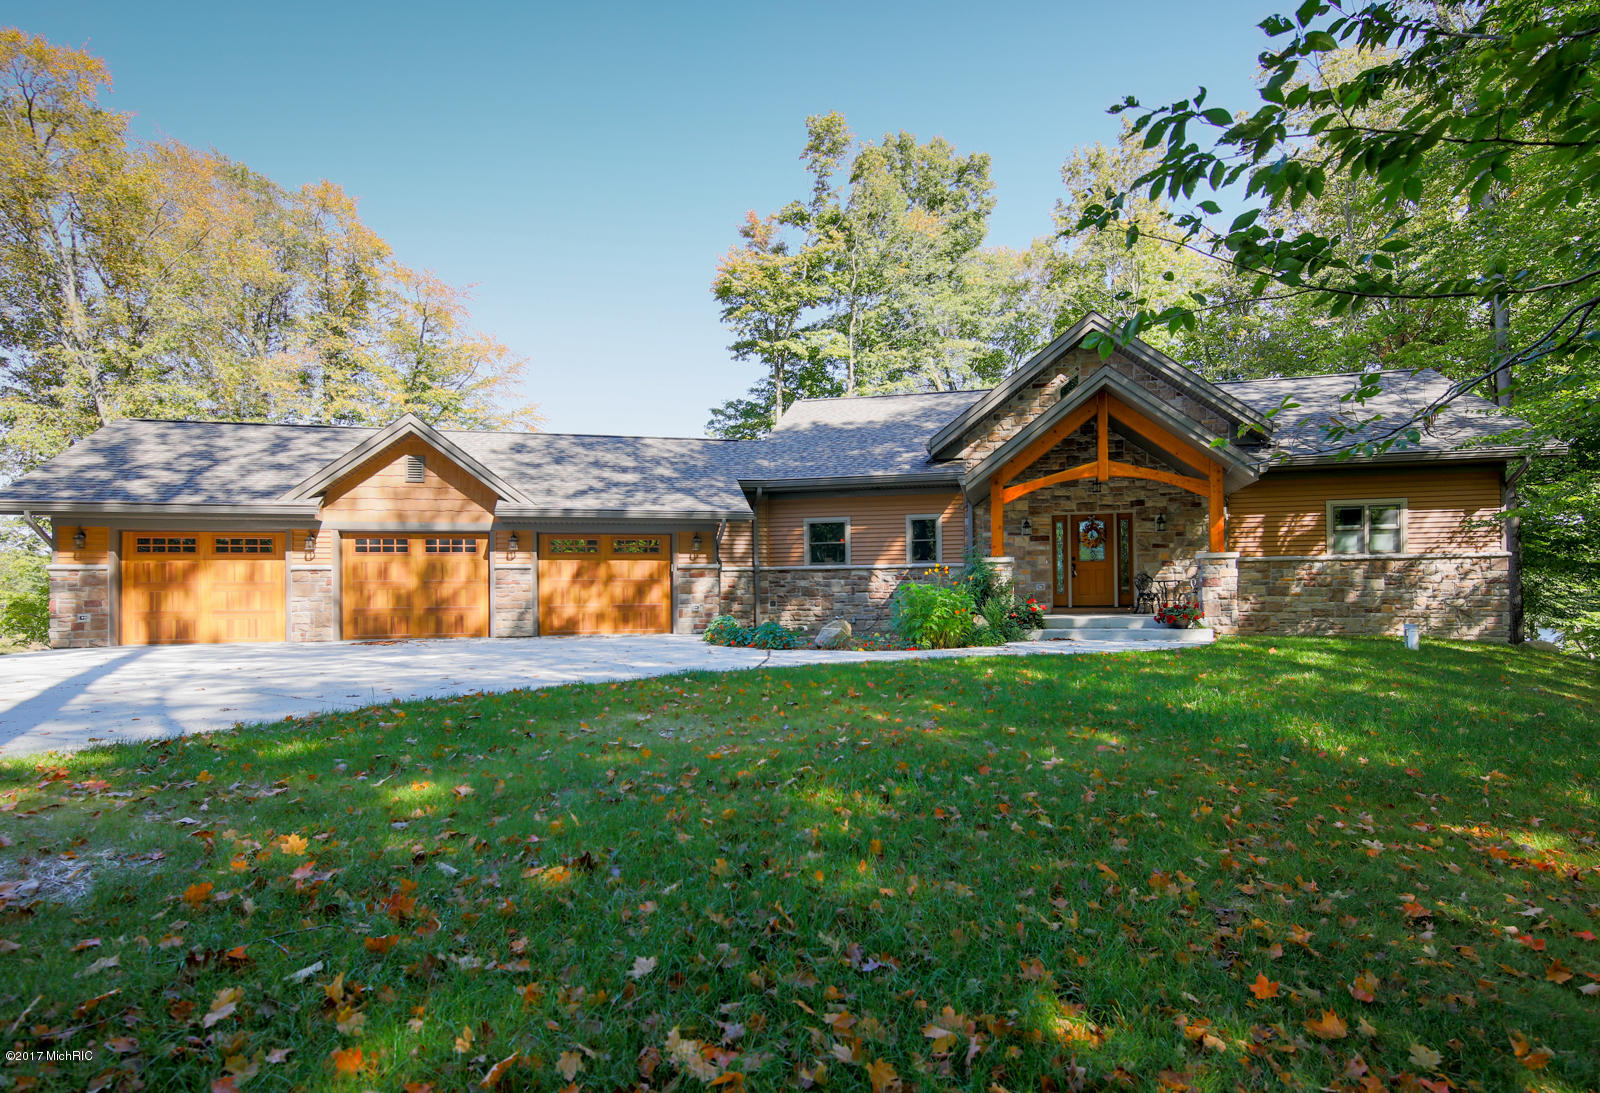 Photo for 1499 Timber Ridge Bay Drive, Allegan, MI 49010 (MLS # 19002606)